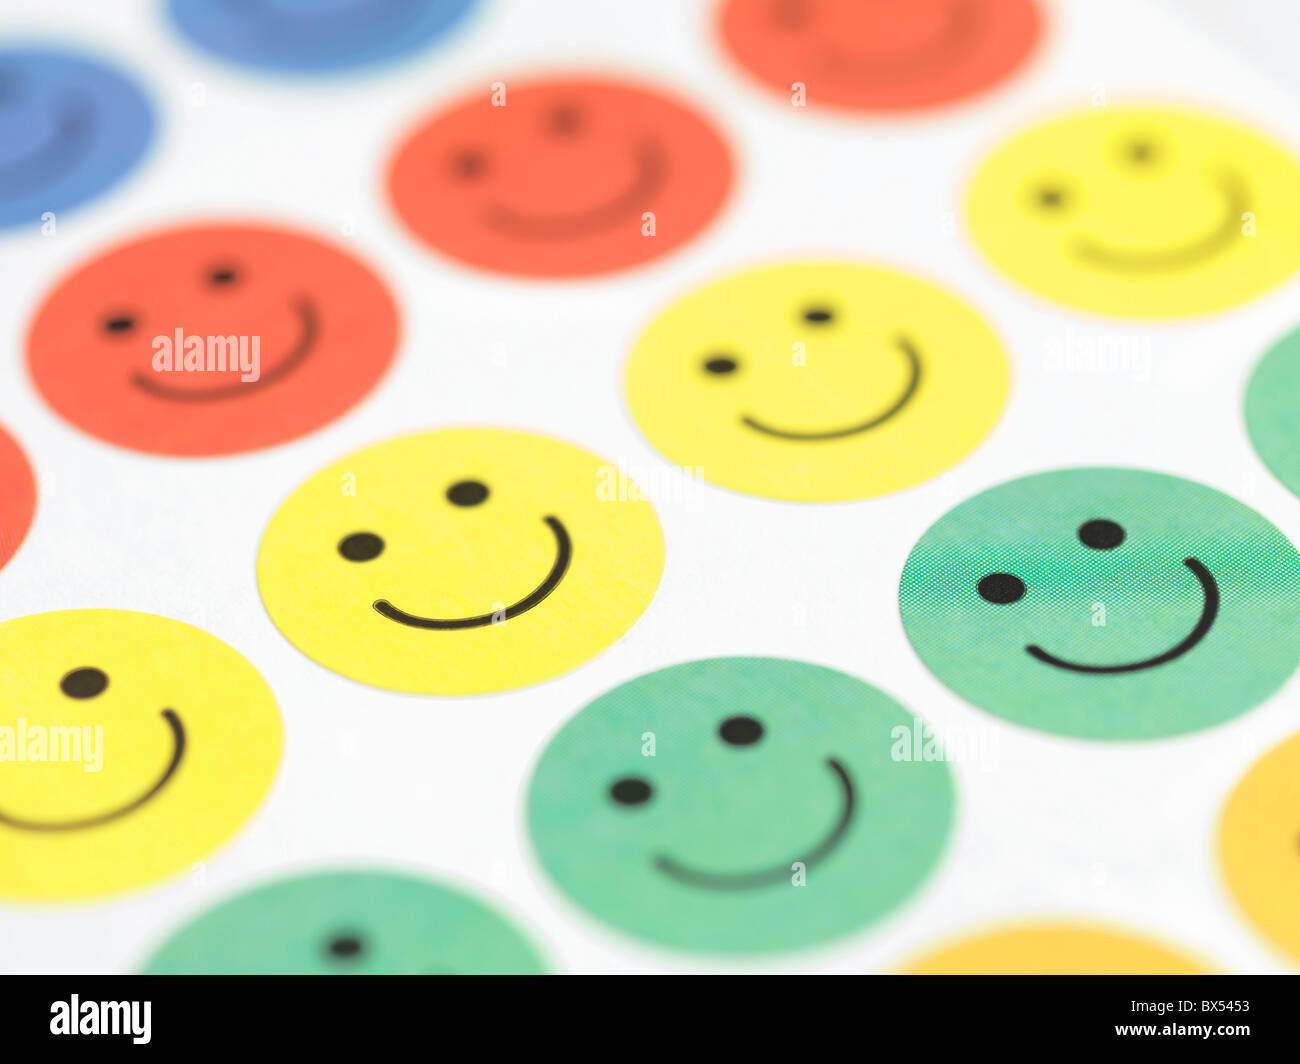 Smiley face stickers stock image